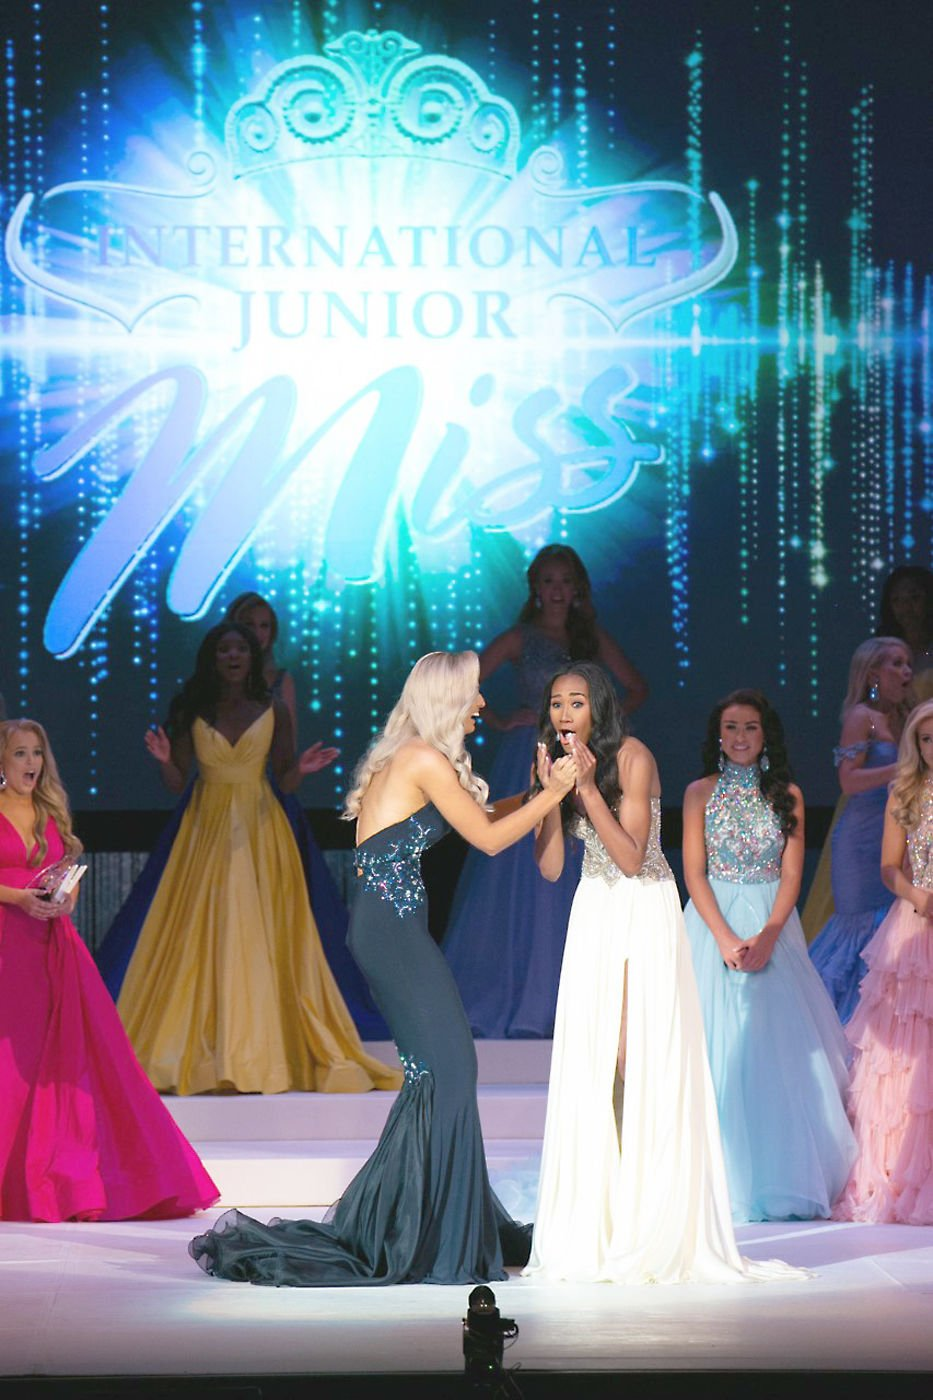 South Union Township woman crowned International Miss